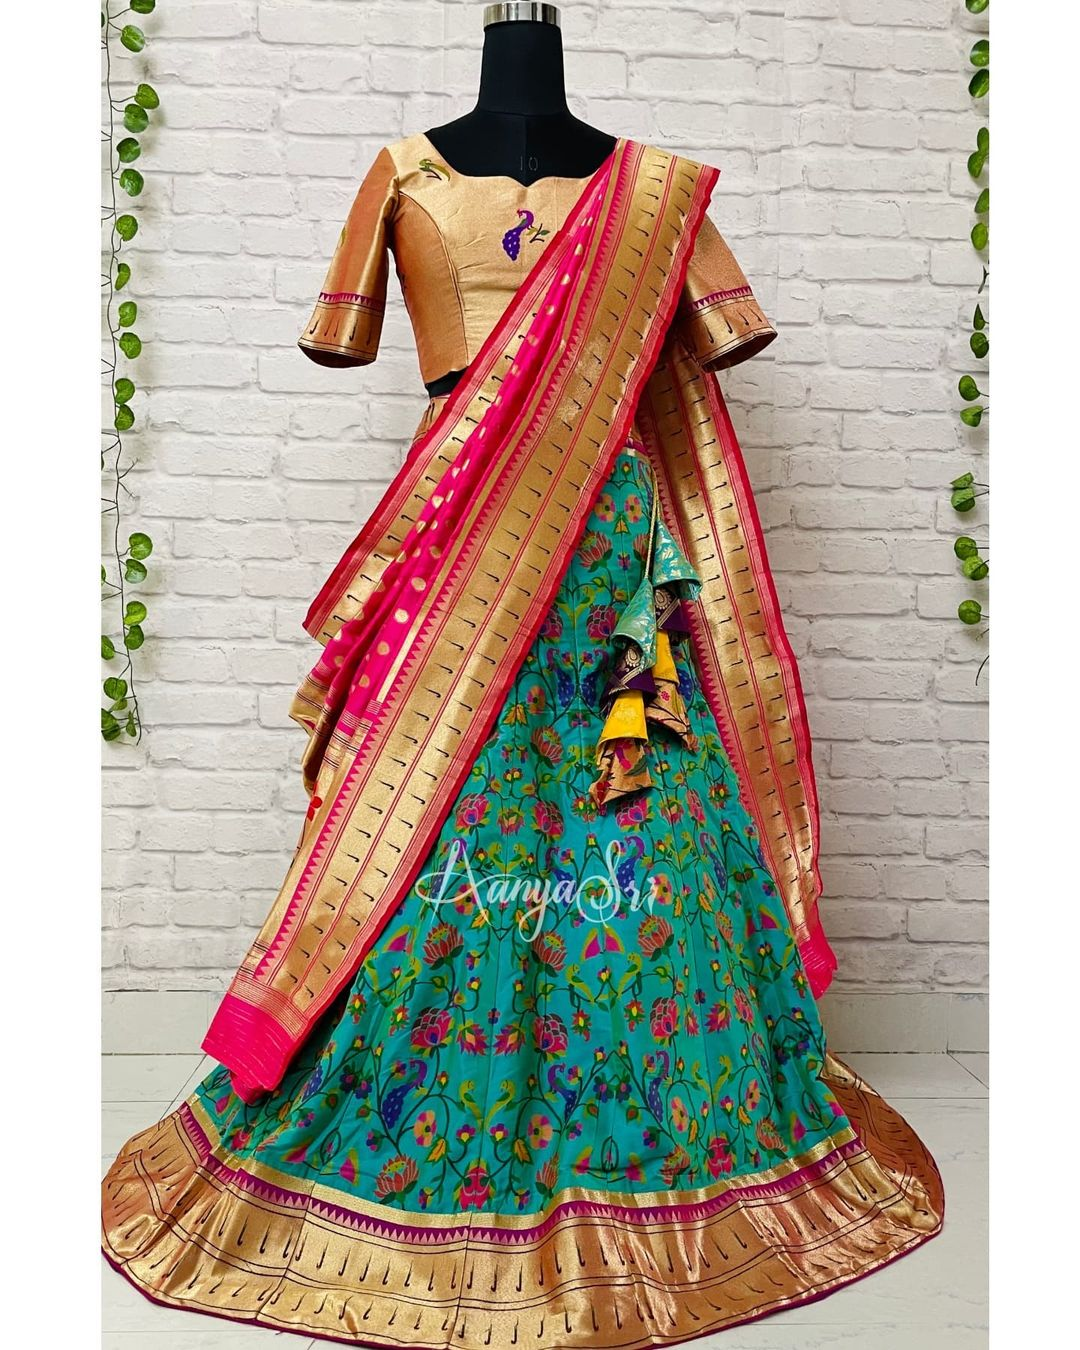 Teal colored traditional paithani lehenga with paithani gold blouse and pink paithani dupatta. This is perfect for weddings and looks grand & elegant !! Price : RS. 9400/-   2021-10-12